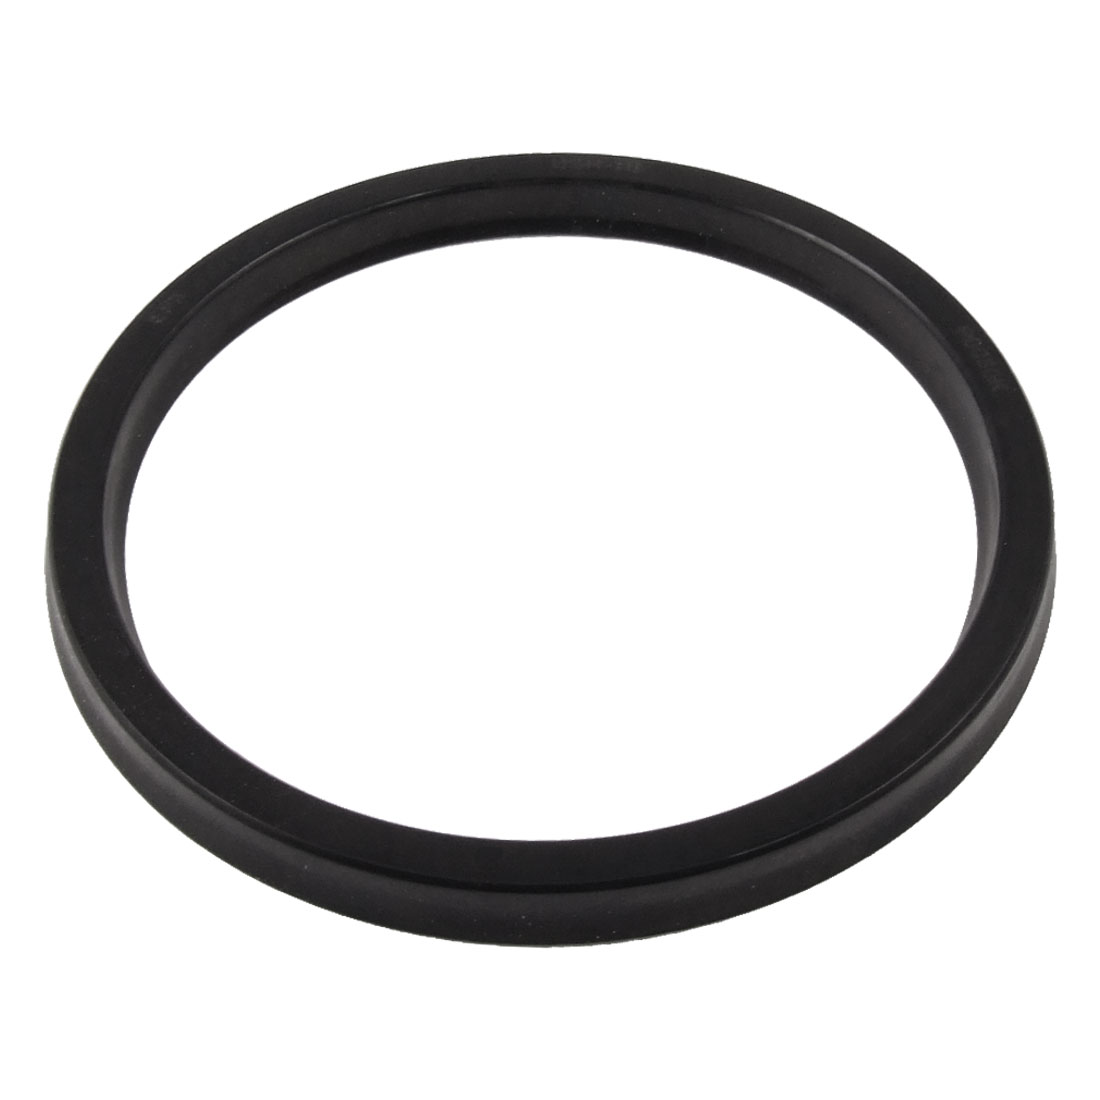 Car Hydraulic Cylinder 70mm x 80mm x 6mm USH Rubber Oil Seal Ring